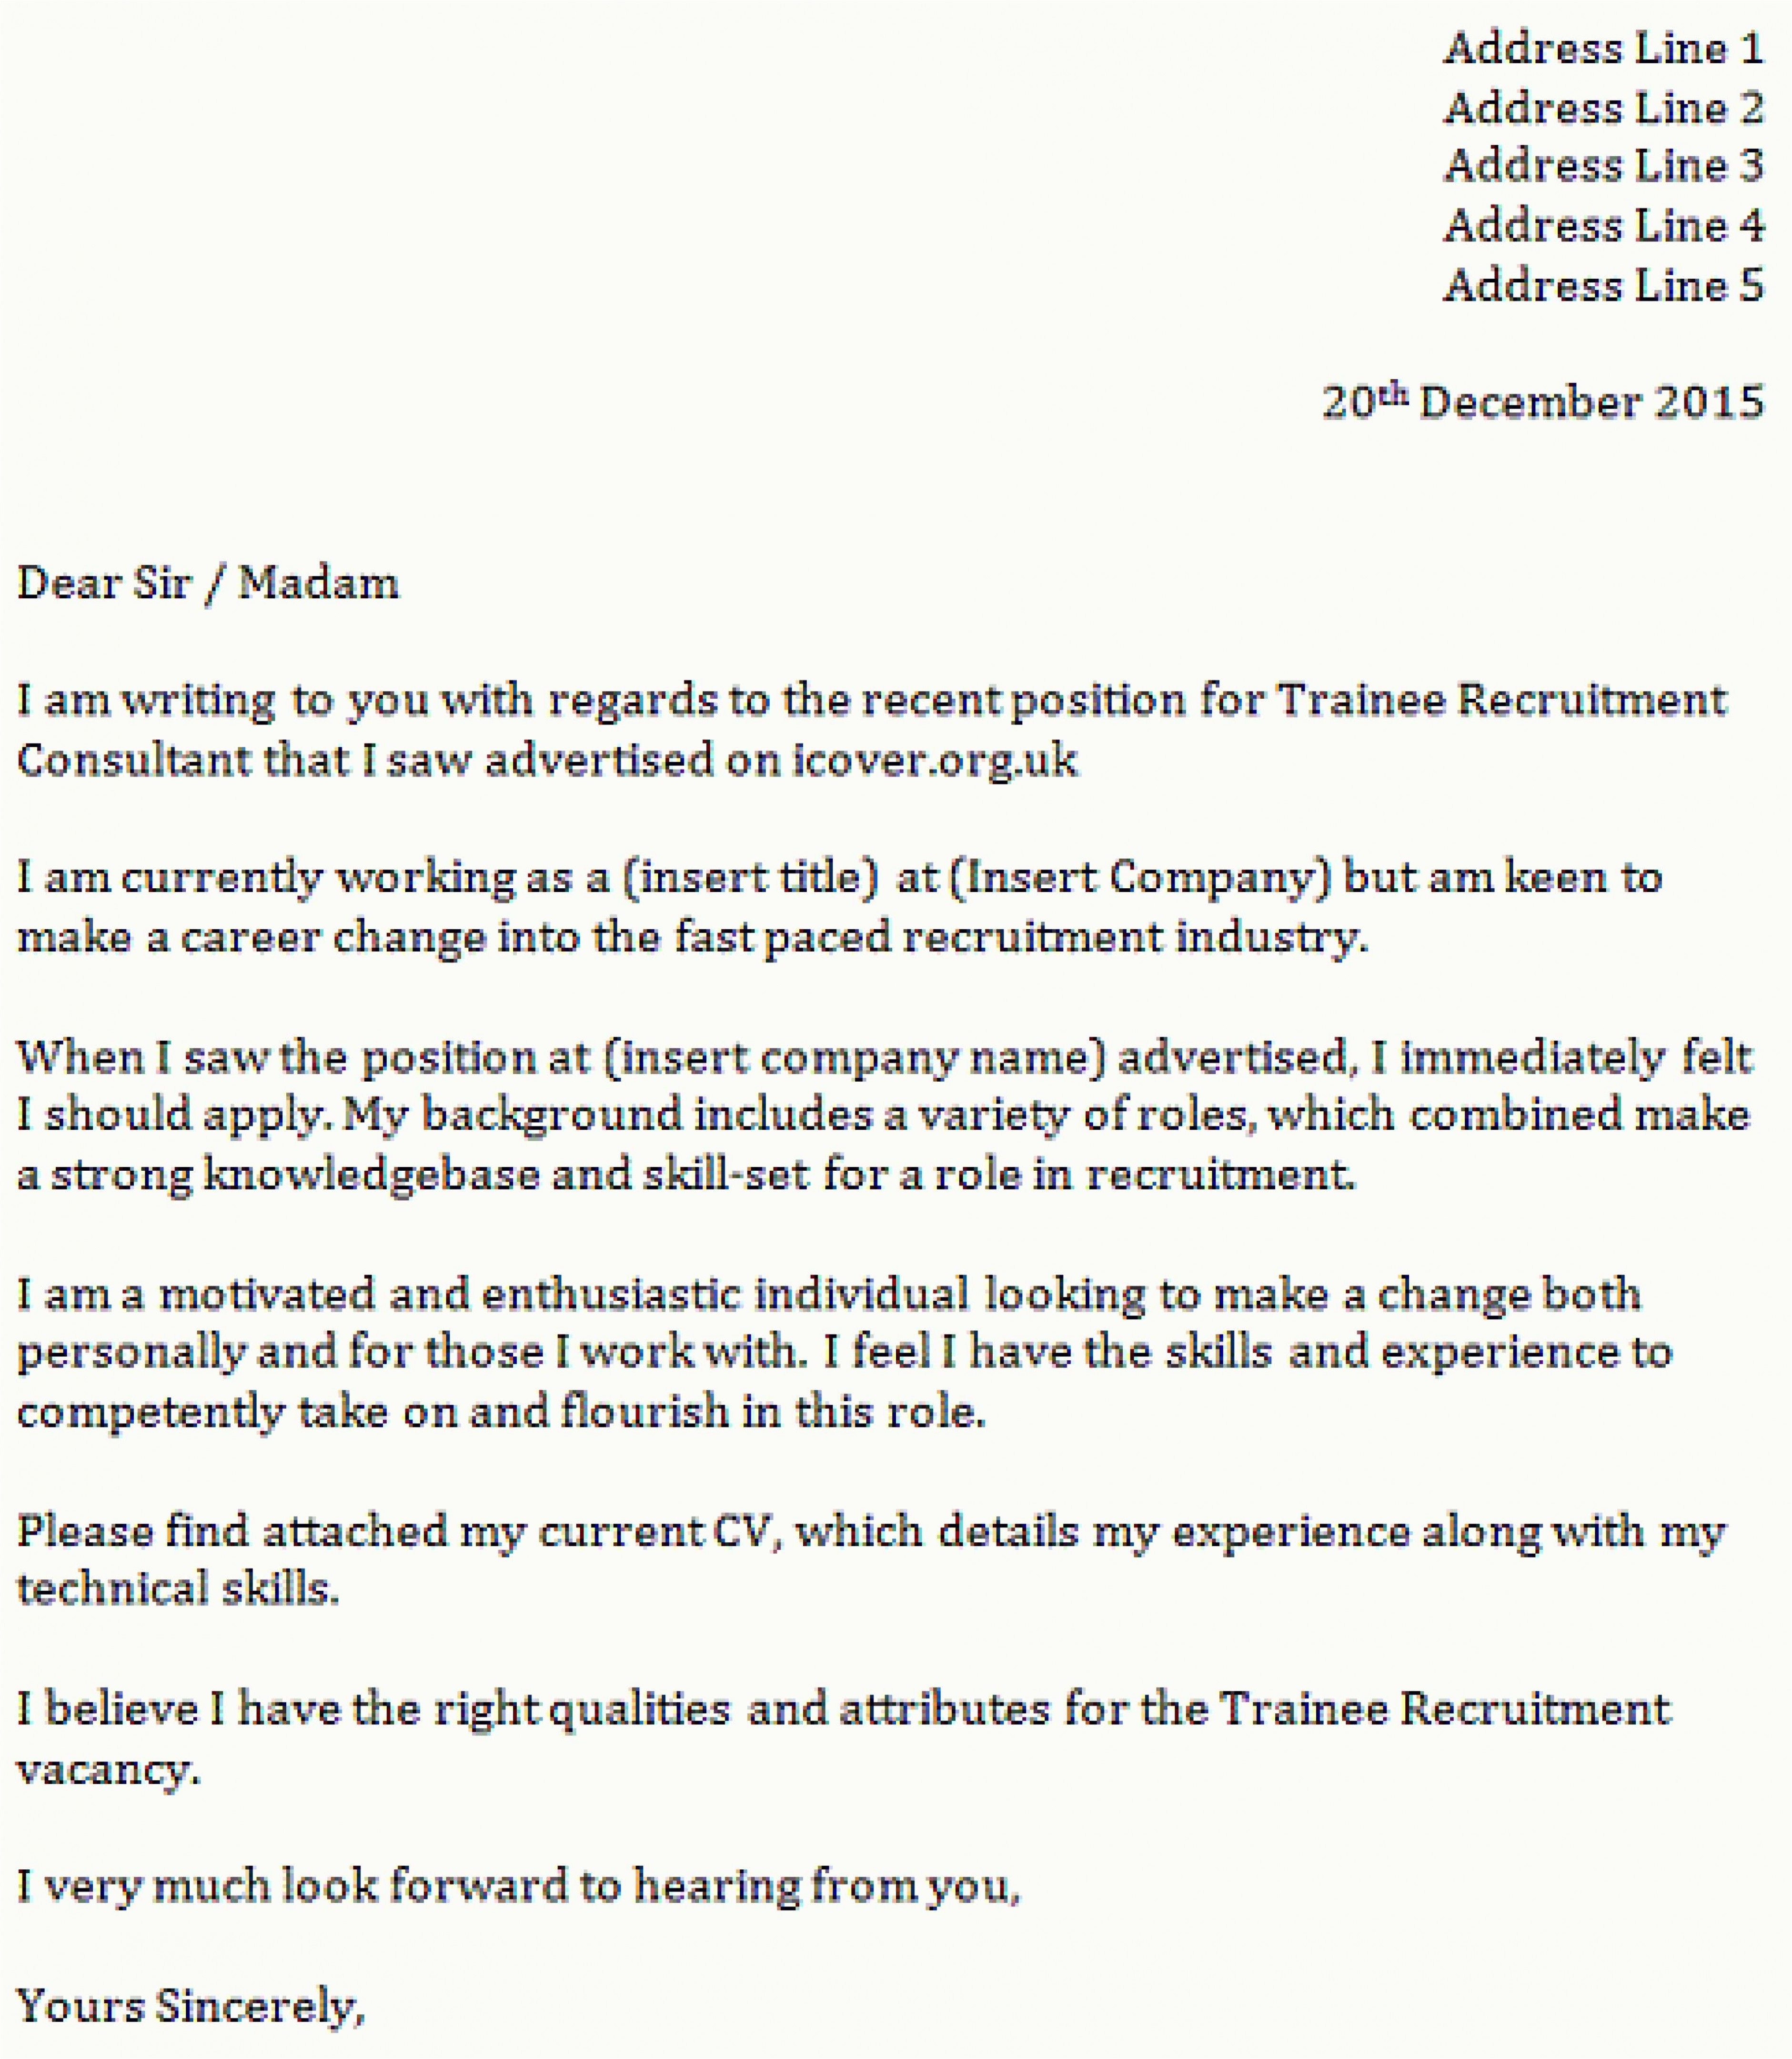 Career Change Resume Samples - Career Change Cover Letter Examples Valid who to Address Cover